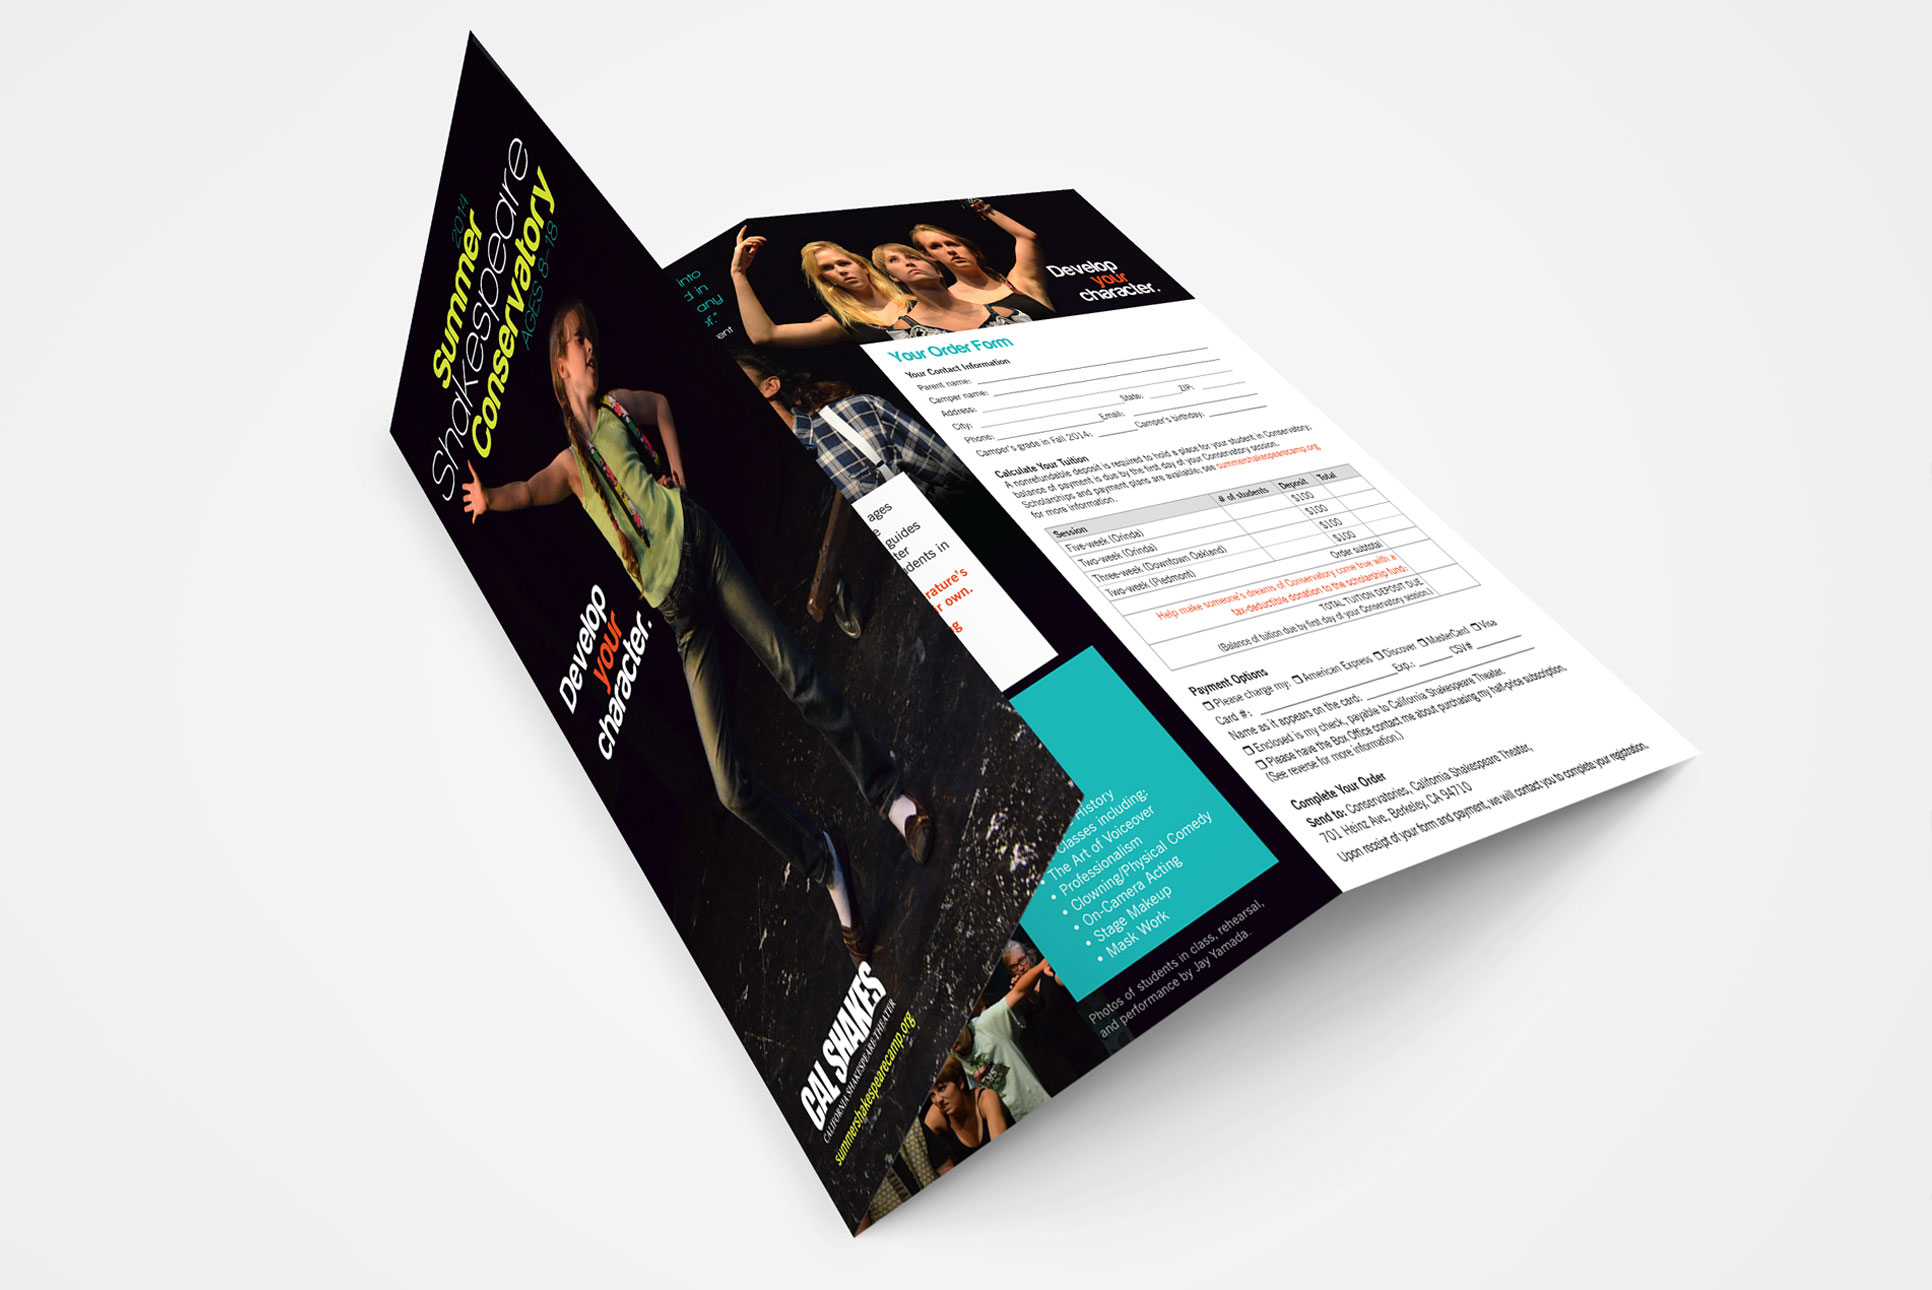 Trifold brochure design for nonprofit theater in Berkeley, CA.